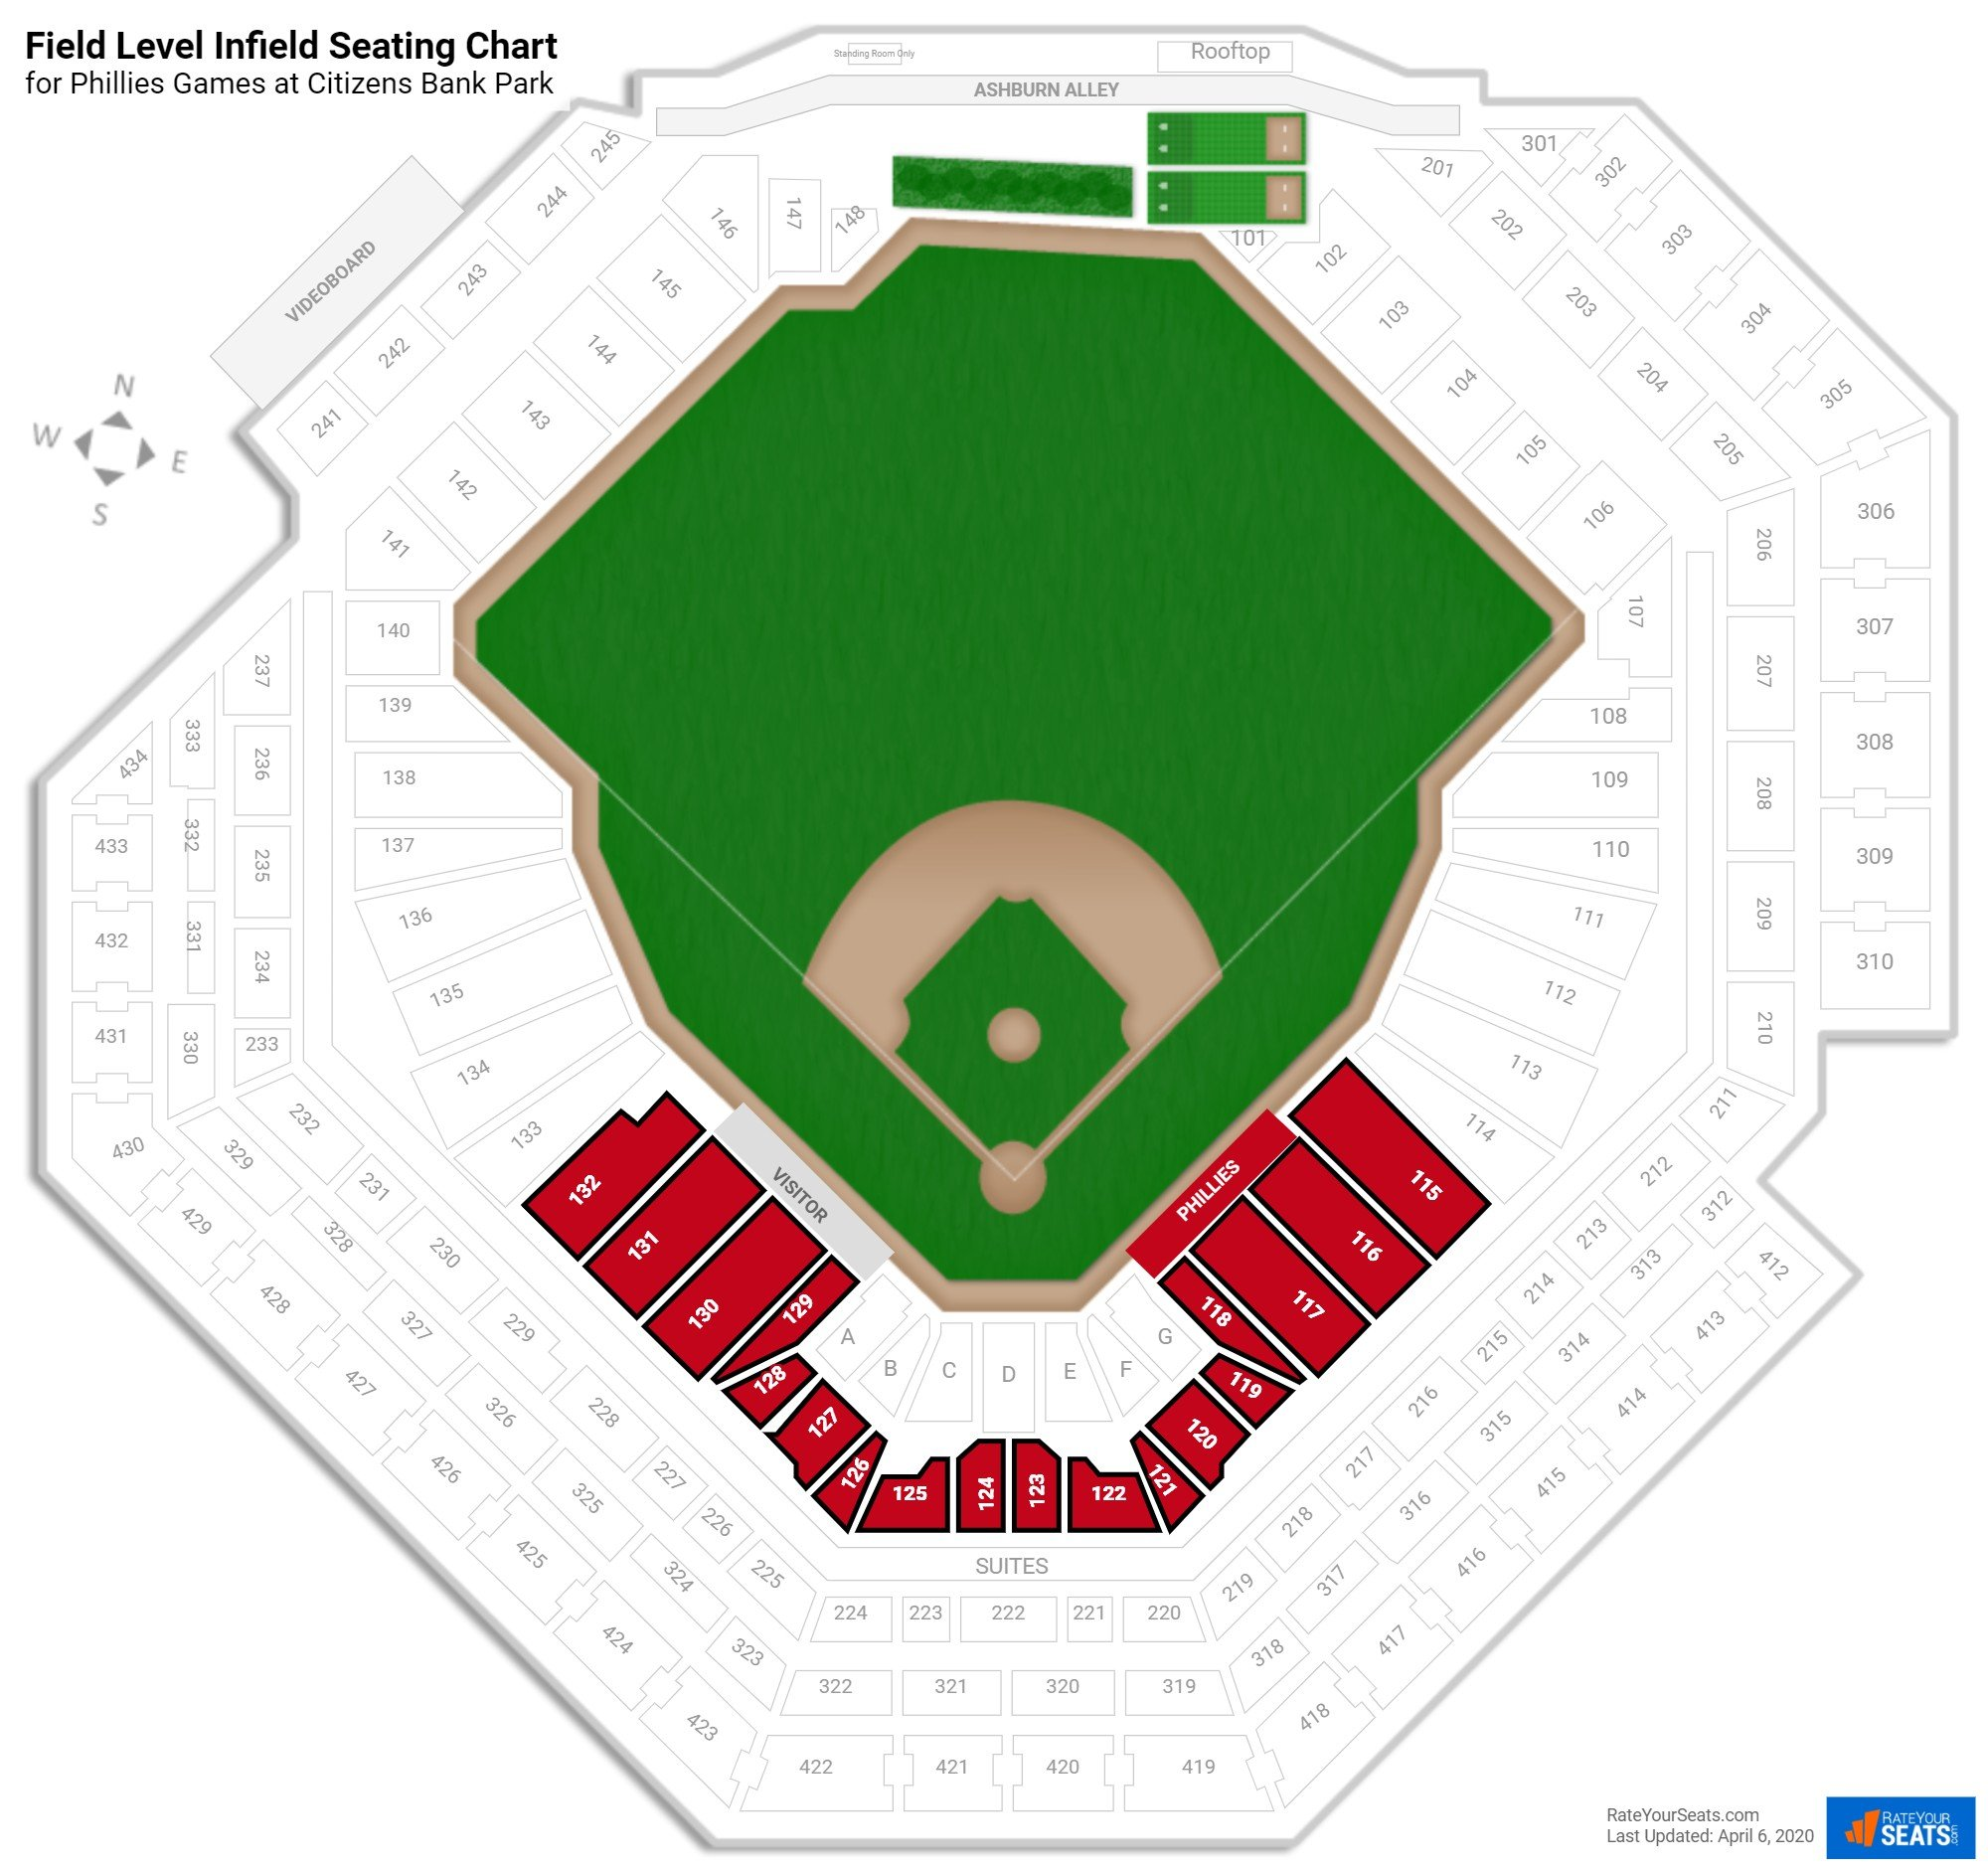 Citizens Bank Park Field Level Infield seating chart